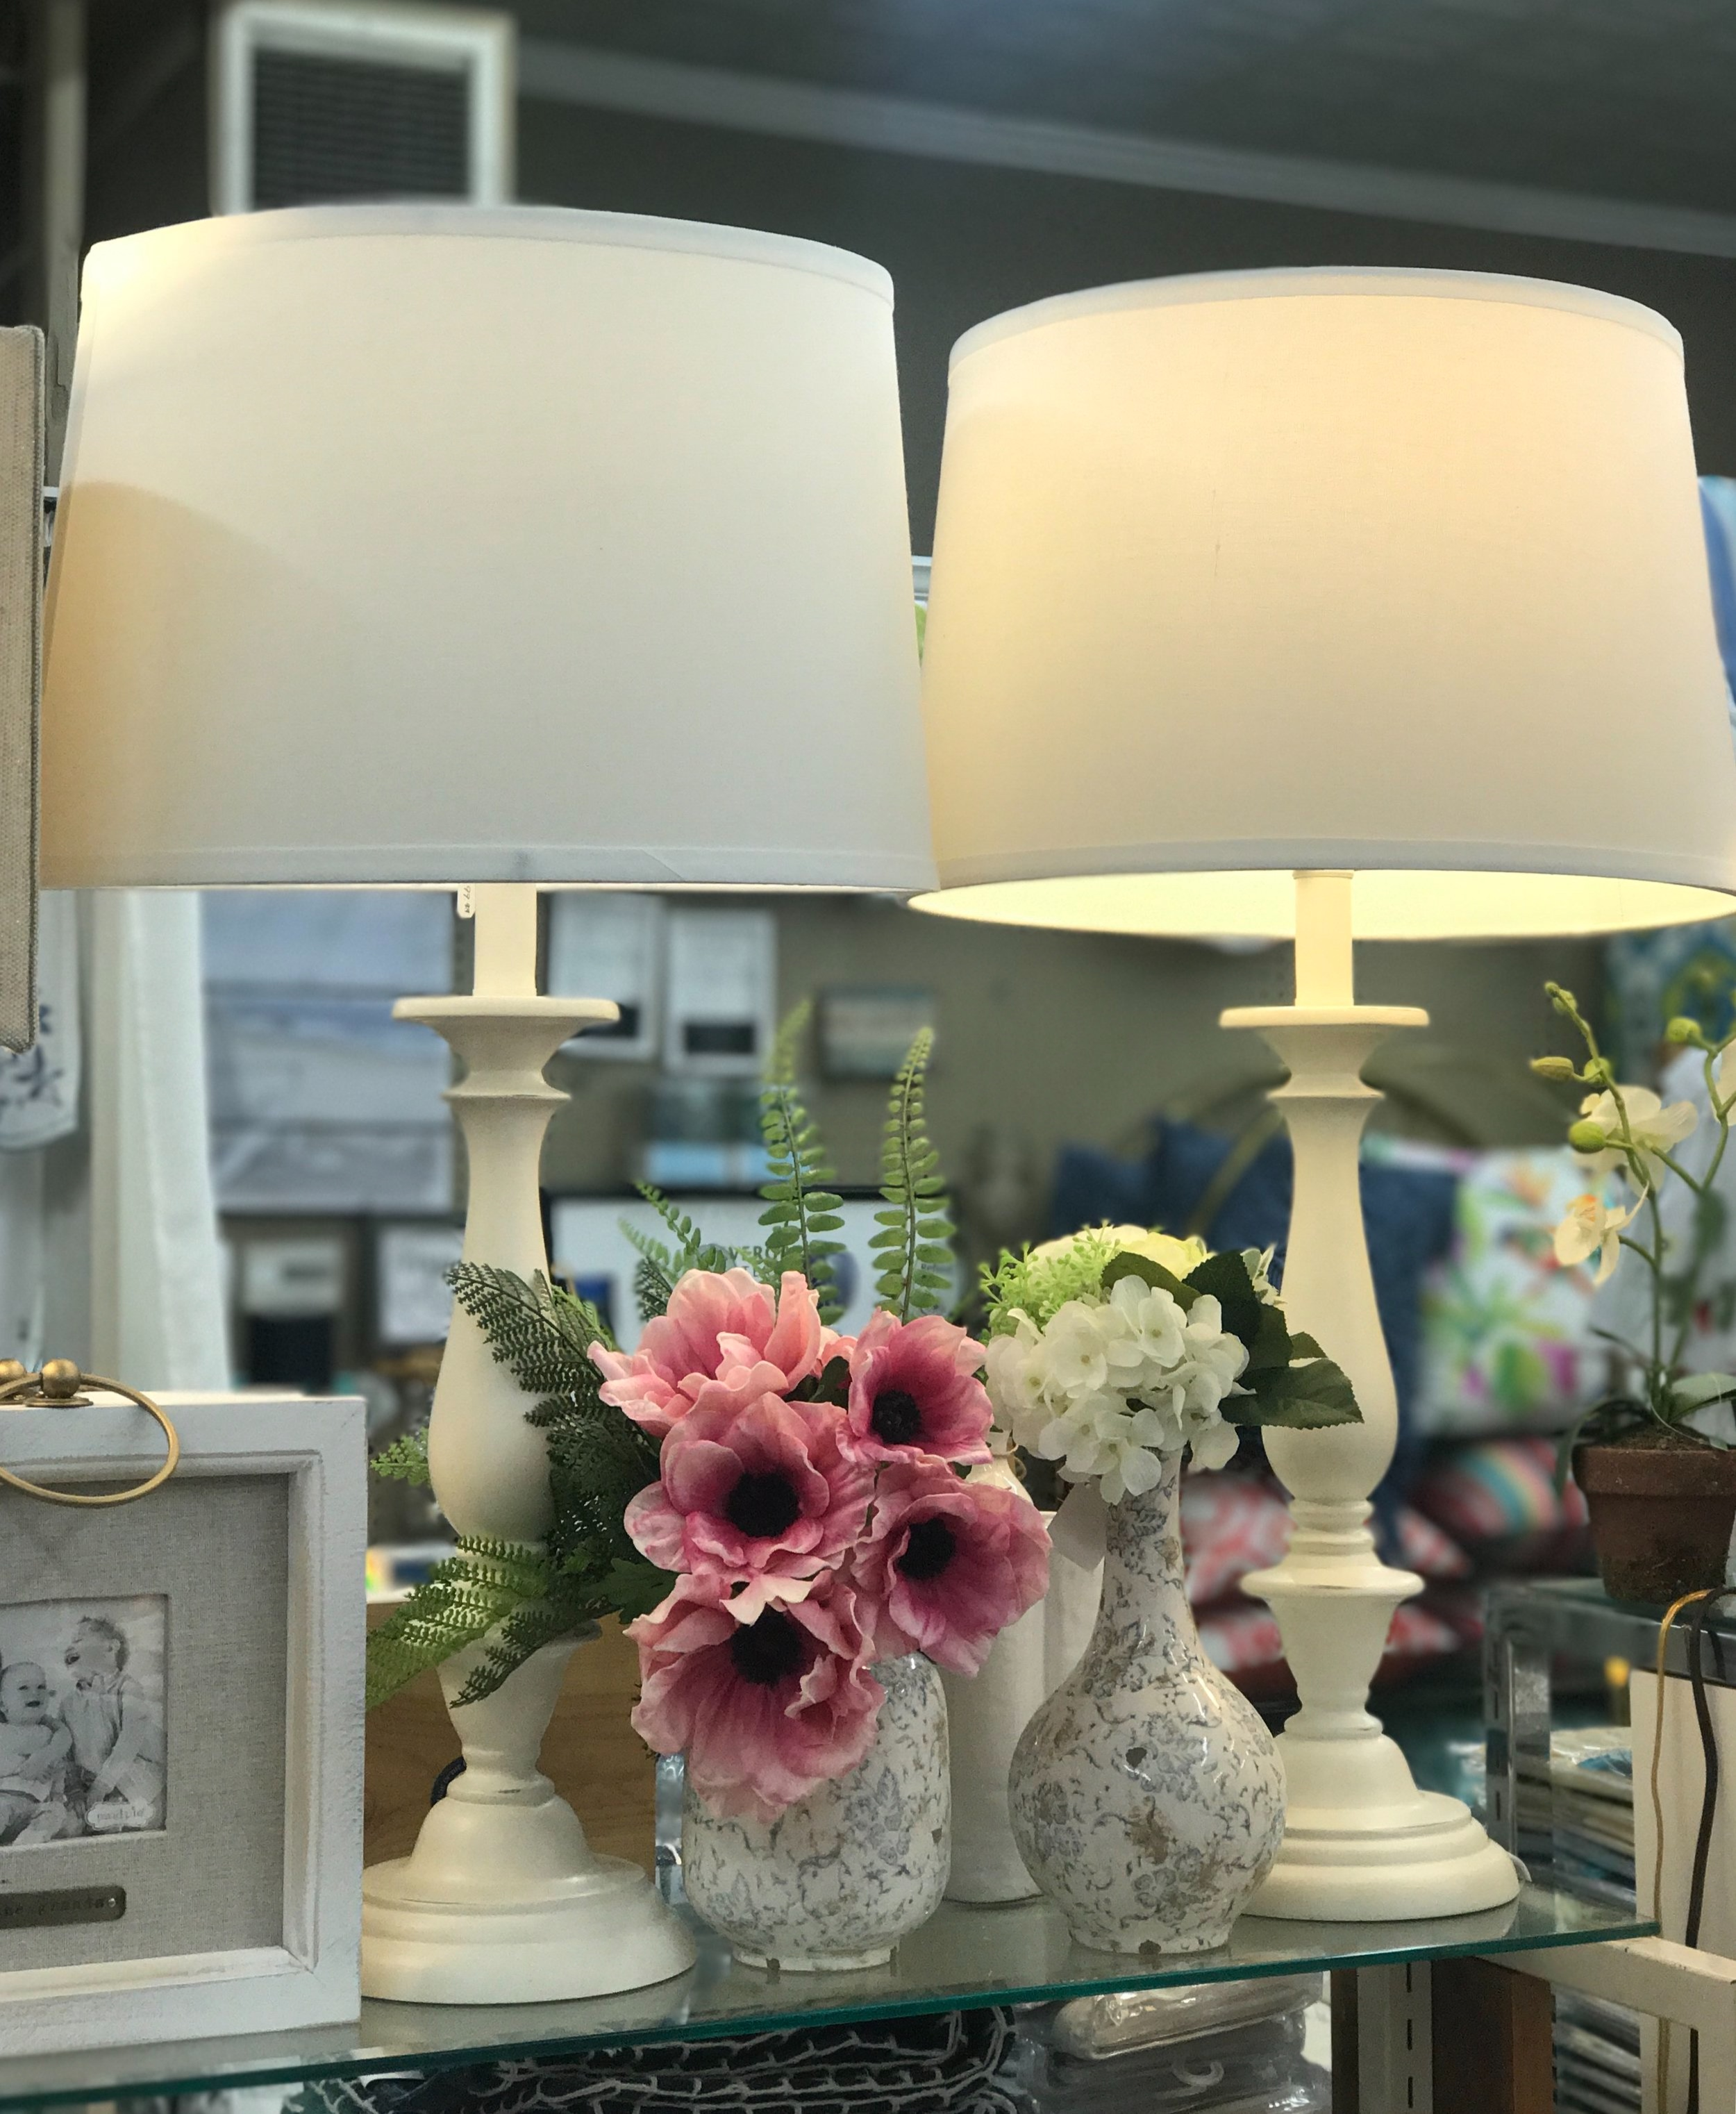 White Lamps and Florals